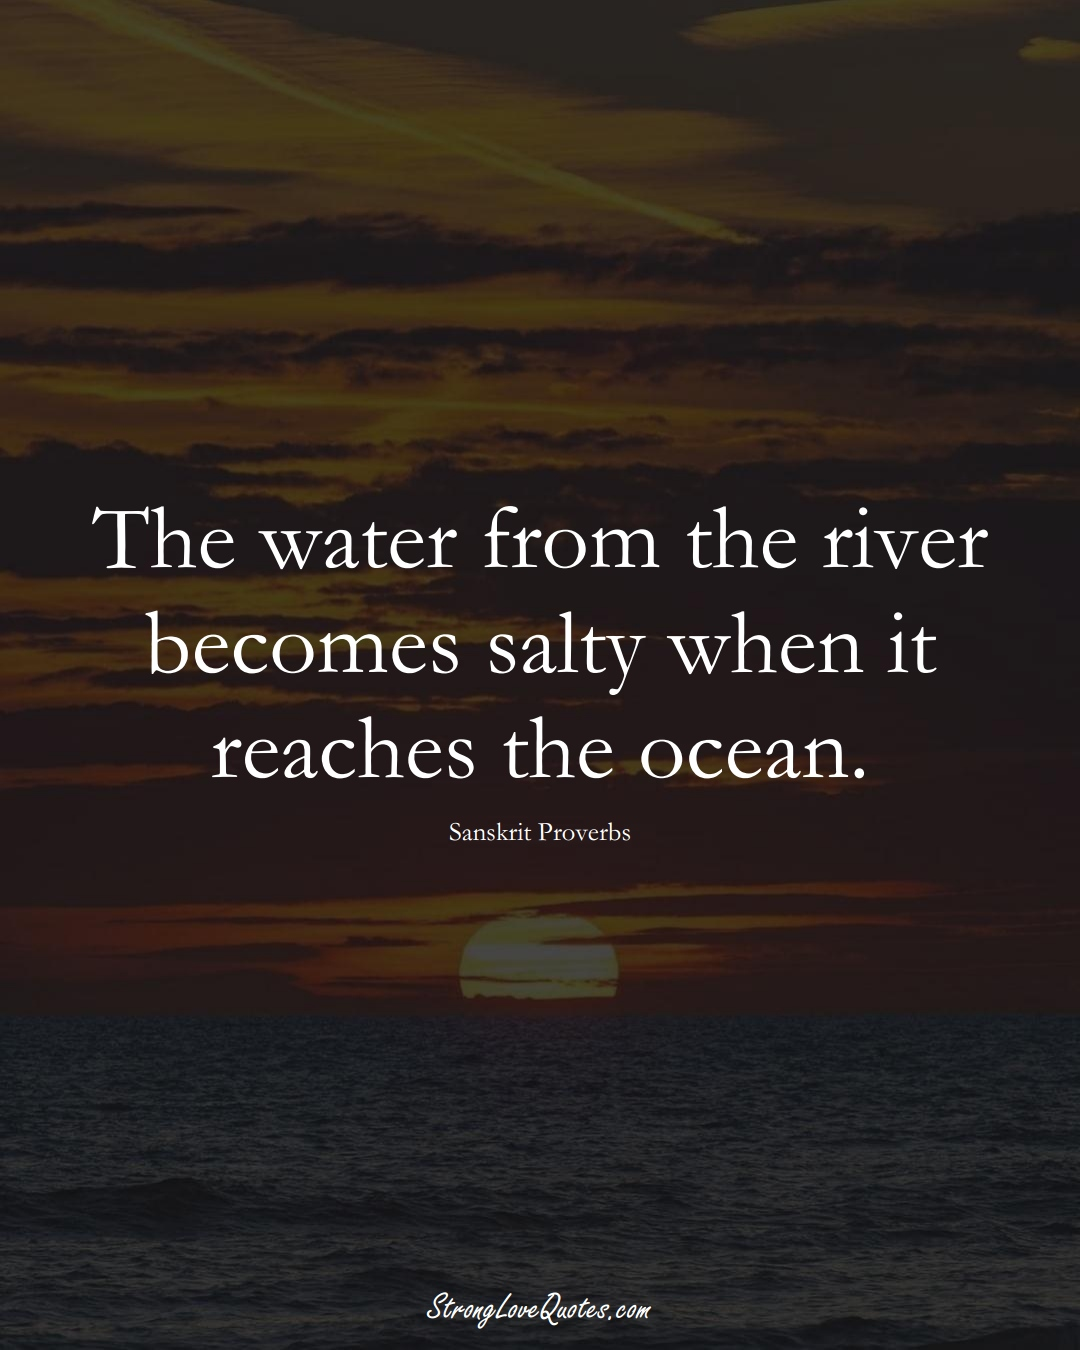 The water from the river becomes salty when it reaches the ocean. (Sanskrit Sayings);  #aVarietyofCulturesSayings